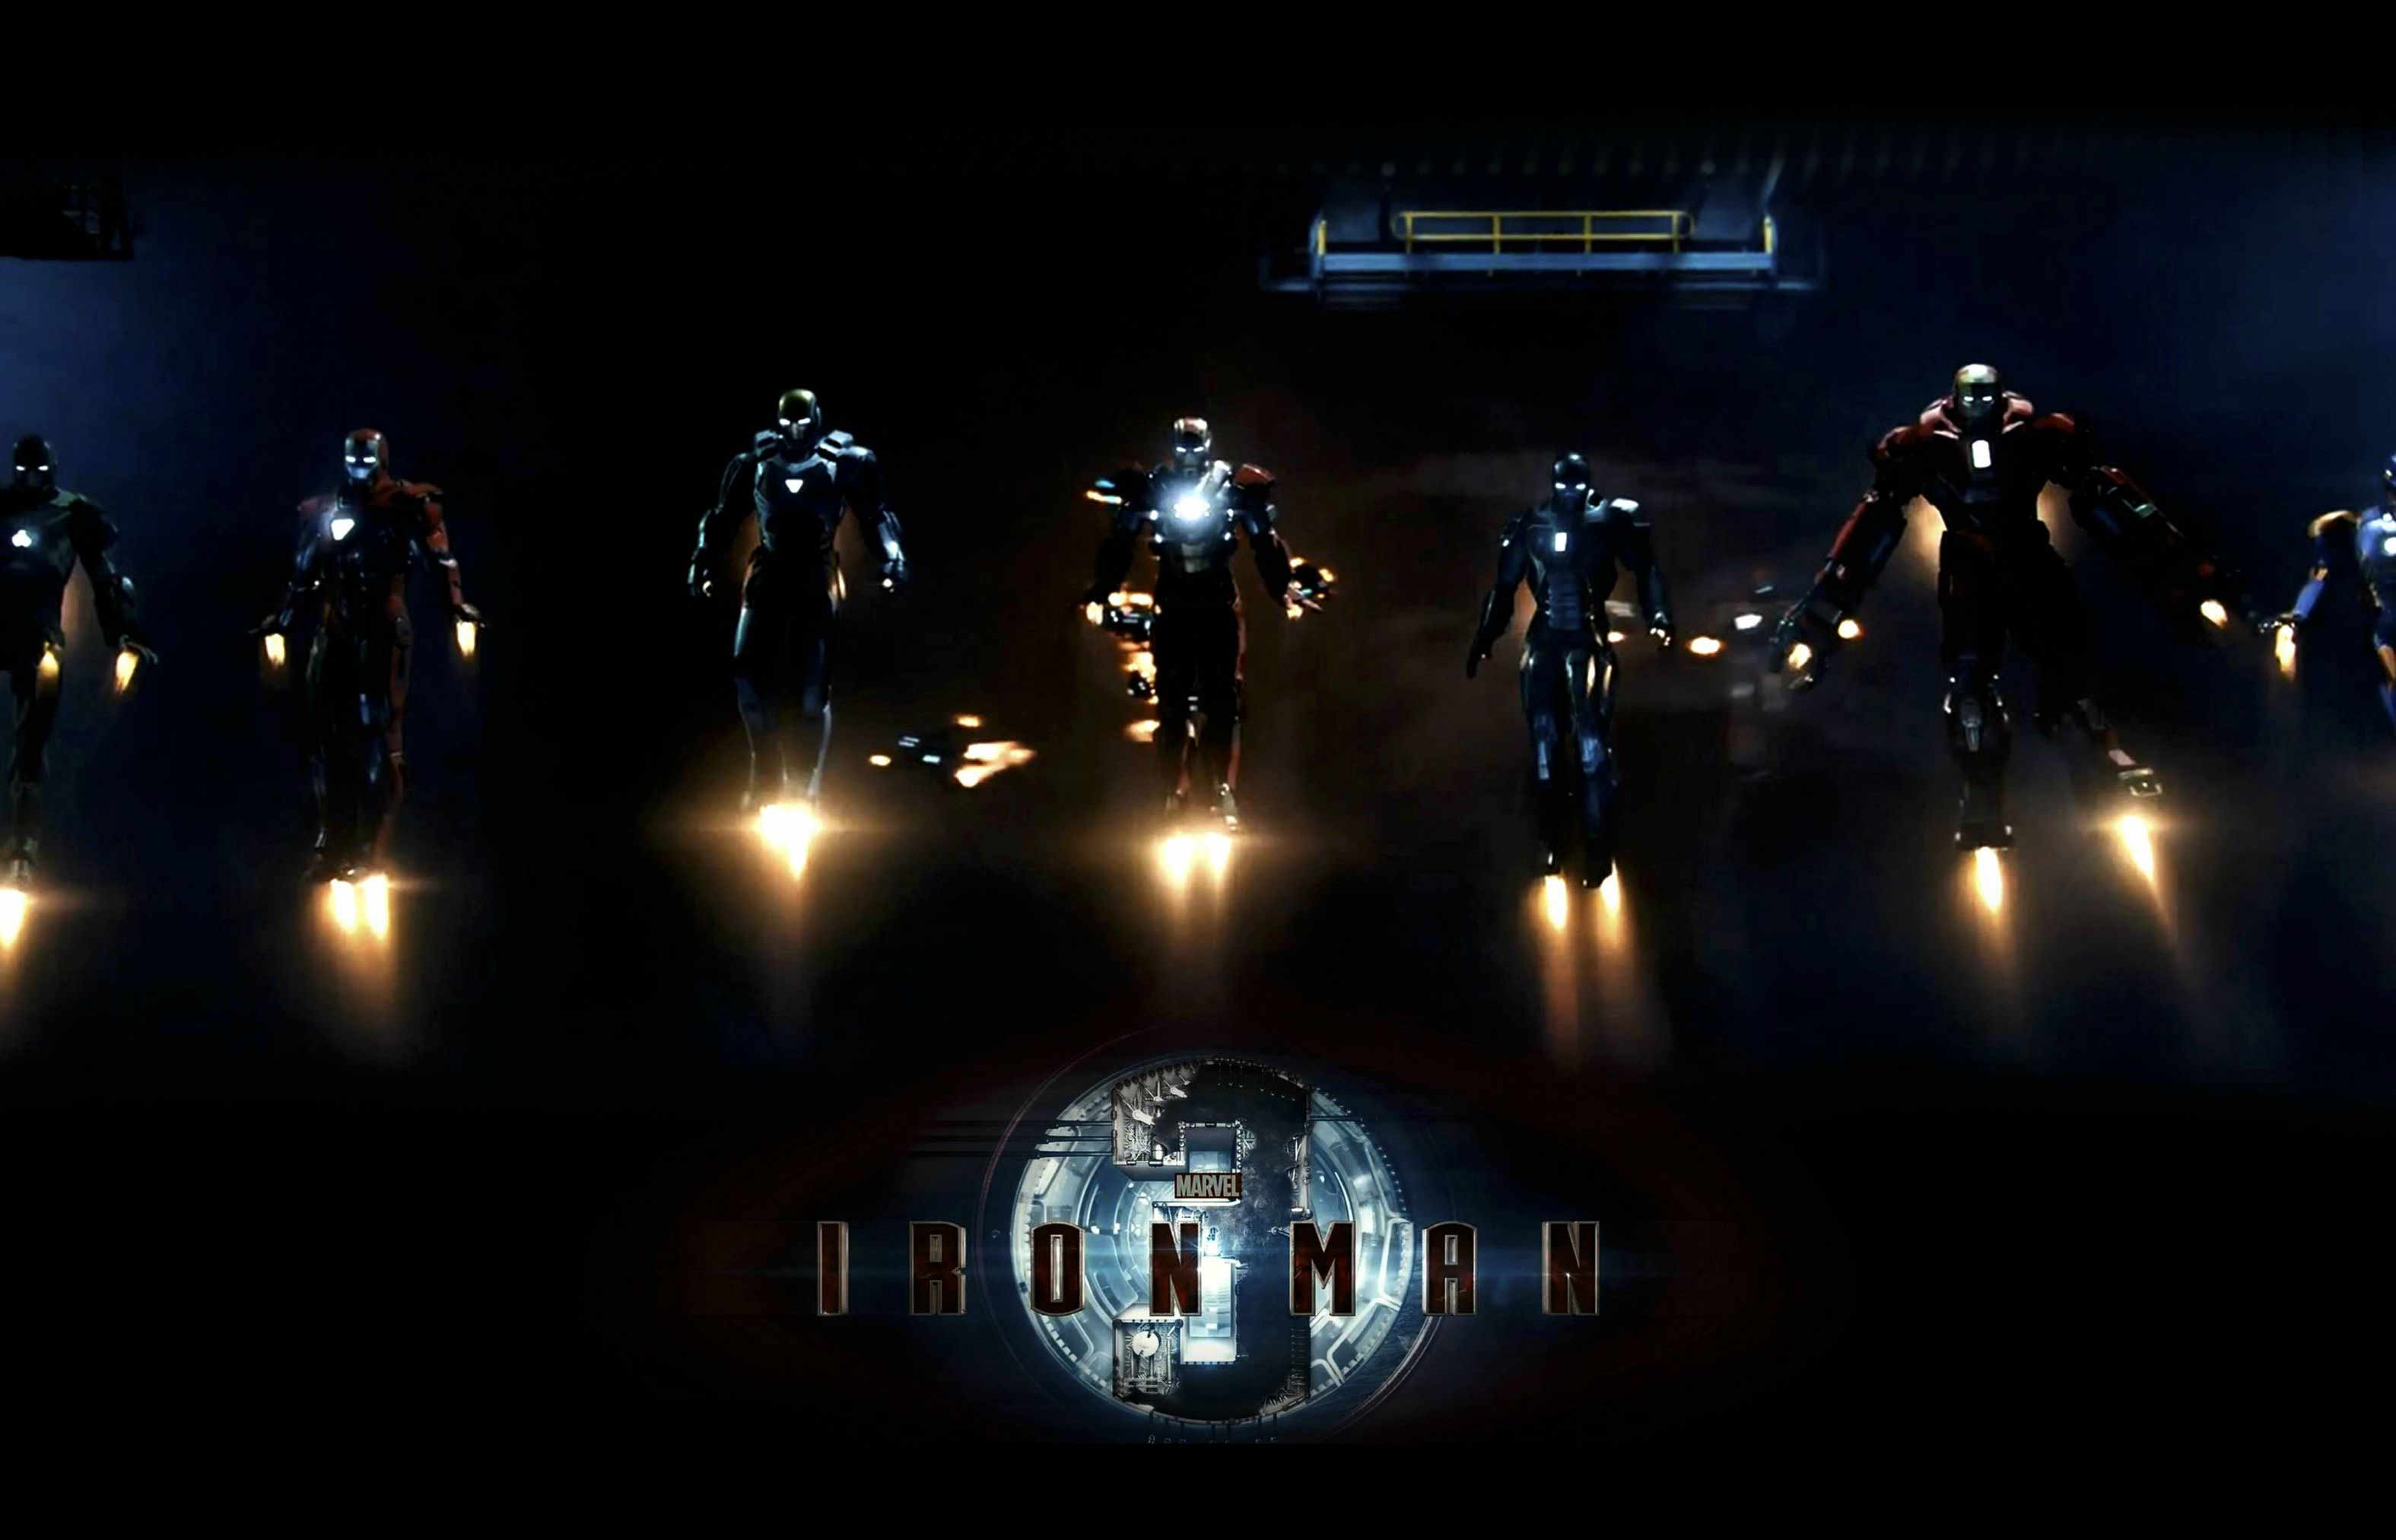 man 3 wallpapers iron man 3 desktop backgrounds iron man 3 desktop 3150x2025